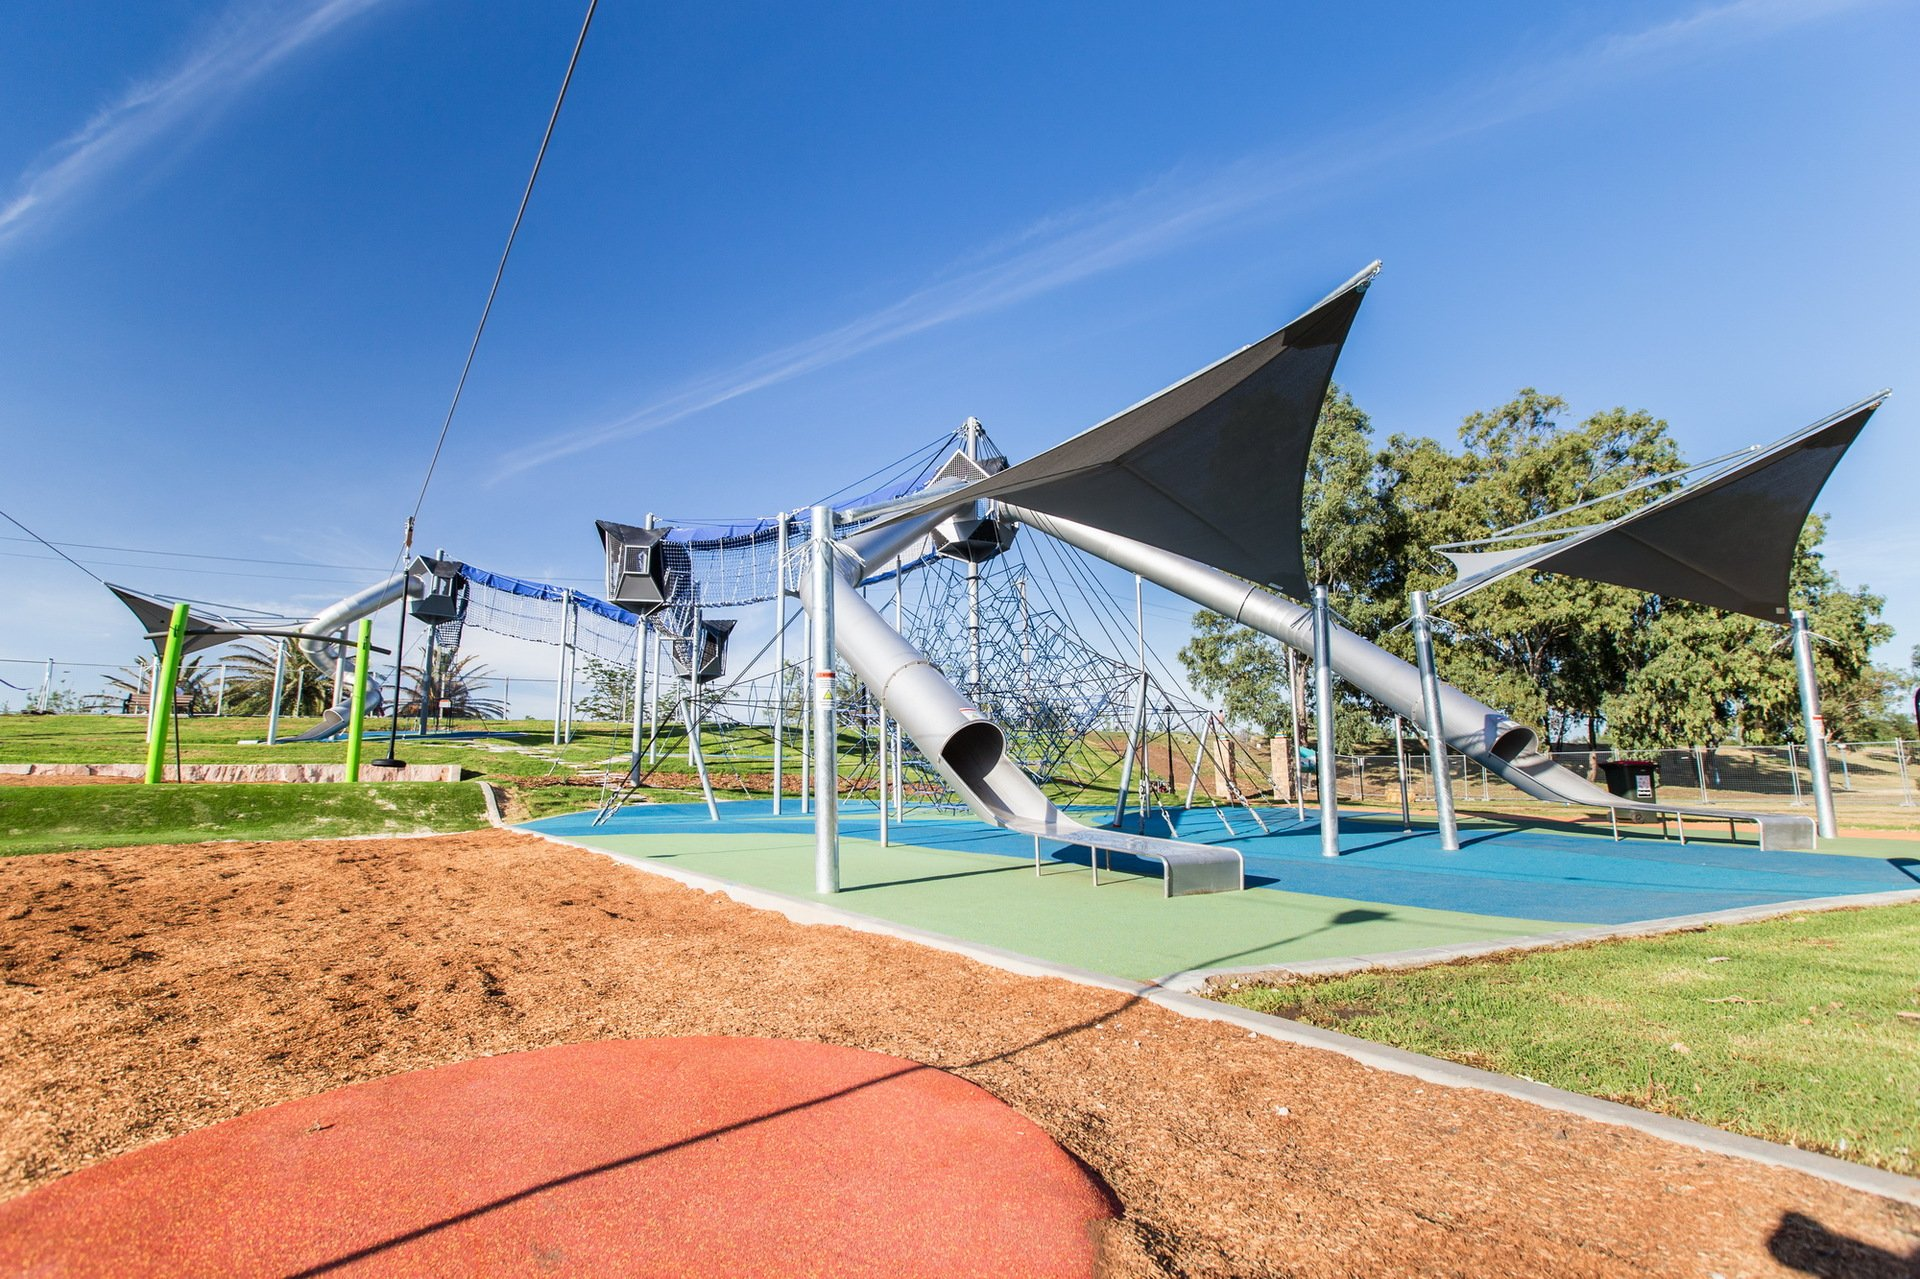 Lavorare In Australia Come Architetto playground inspiration for architects - find inspiring cases